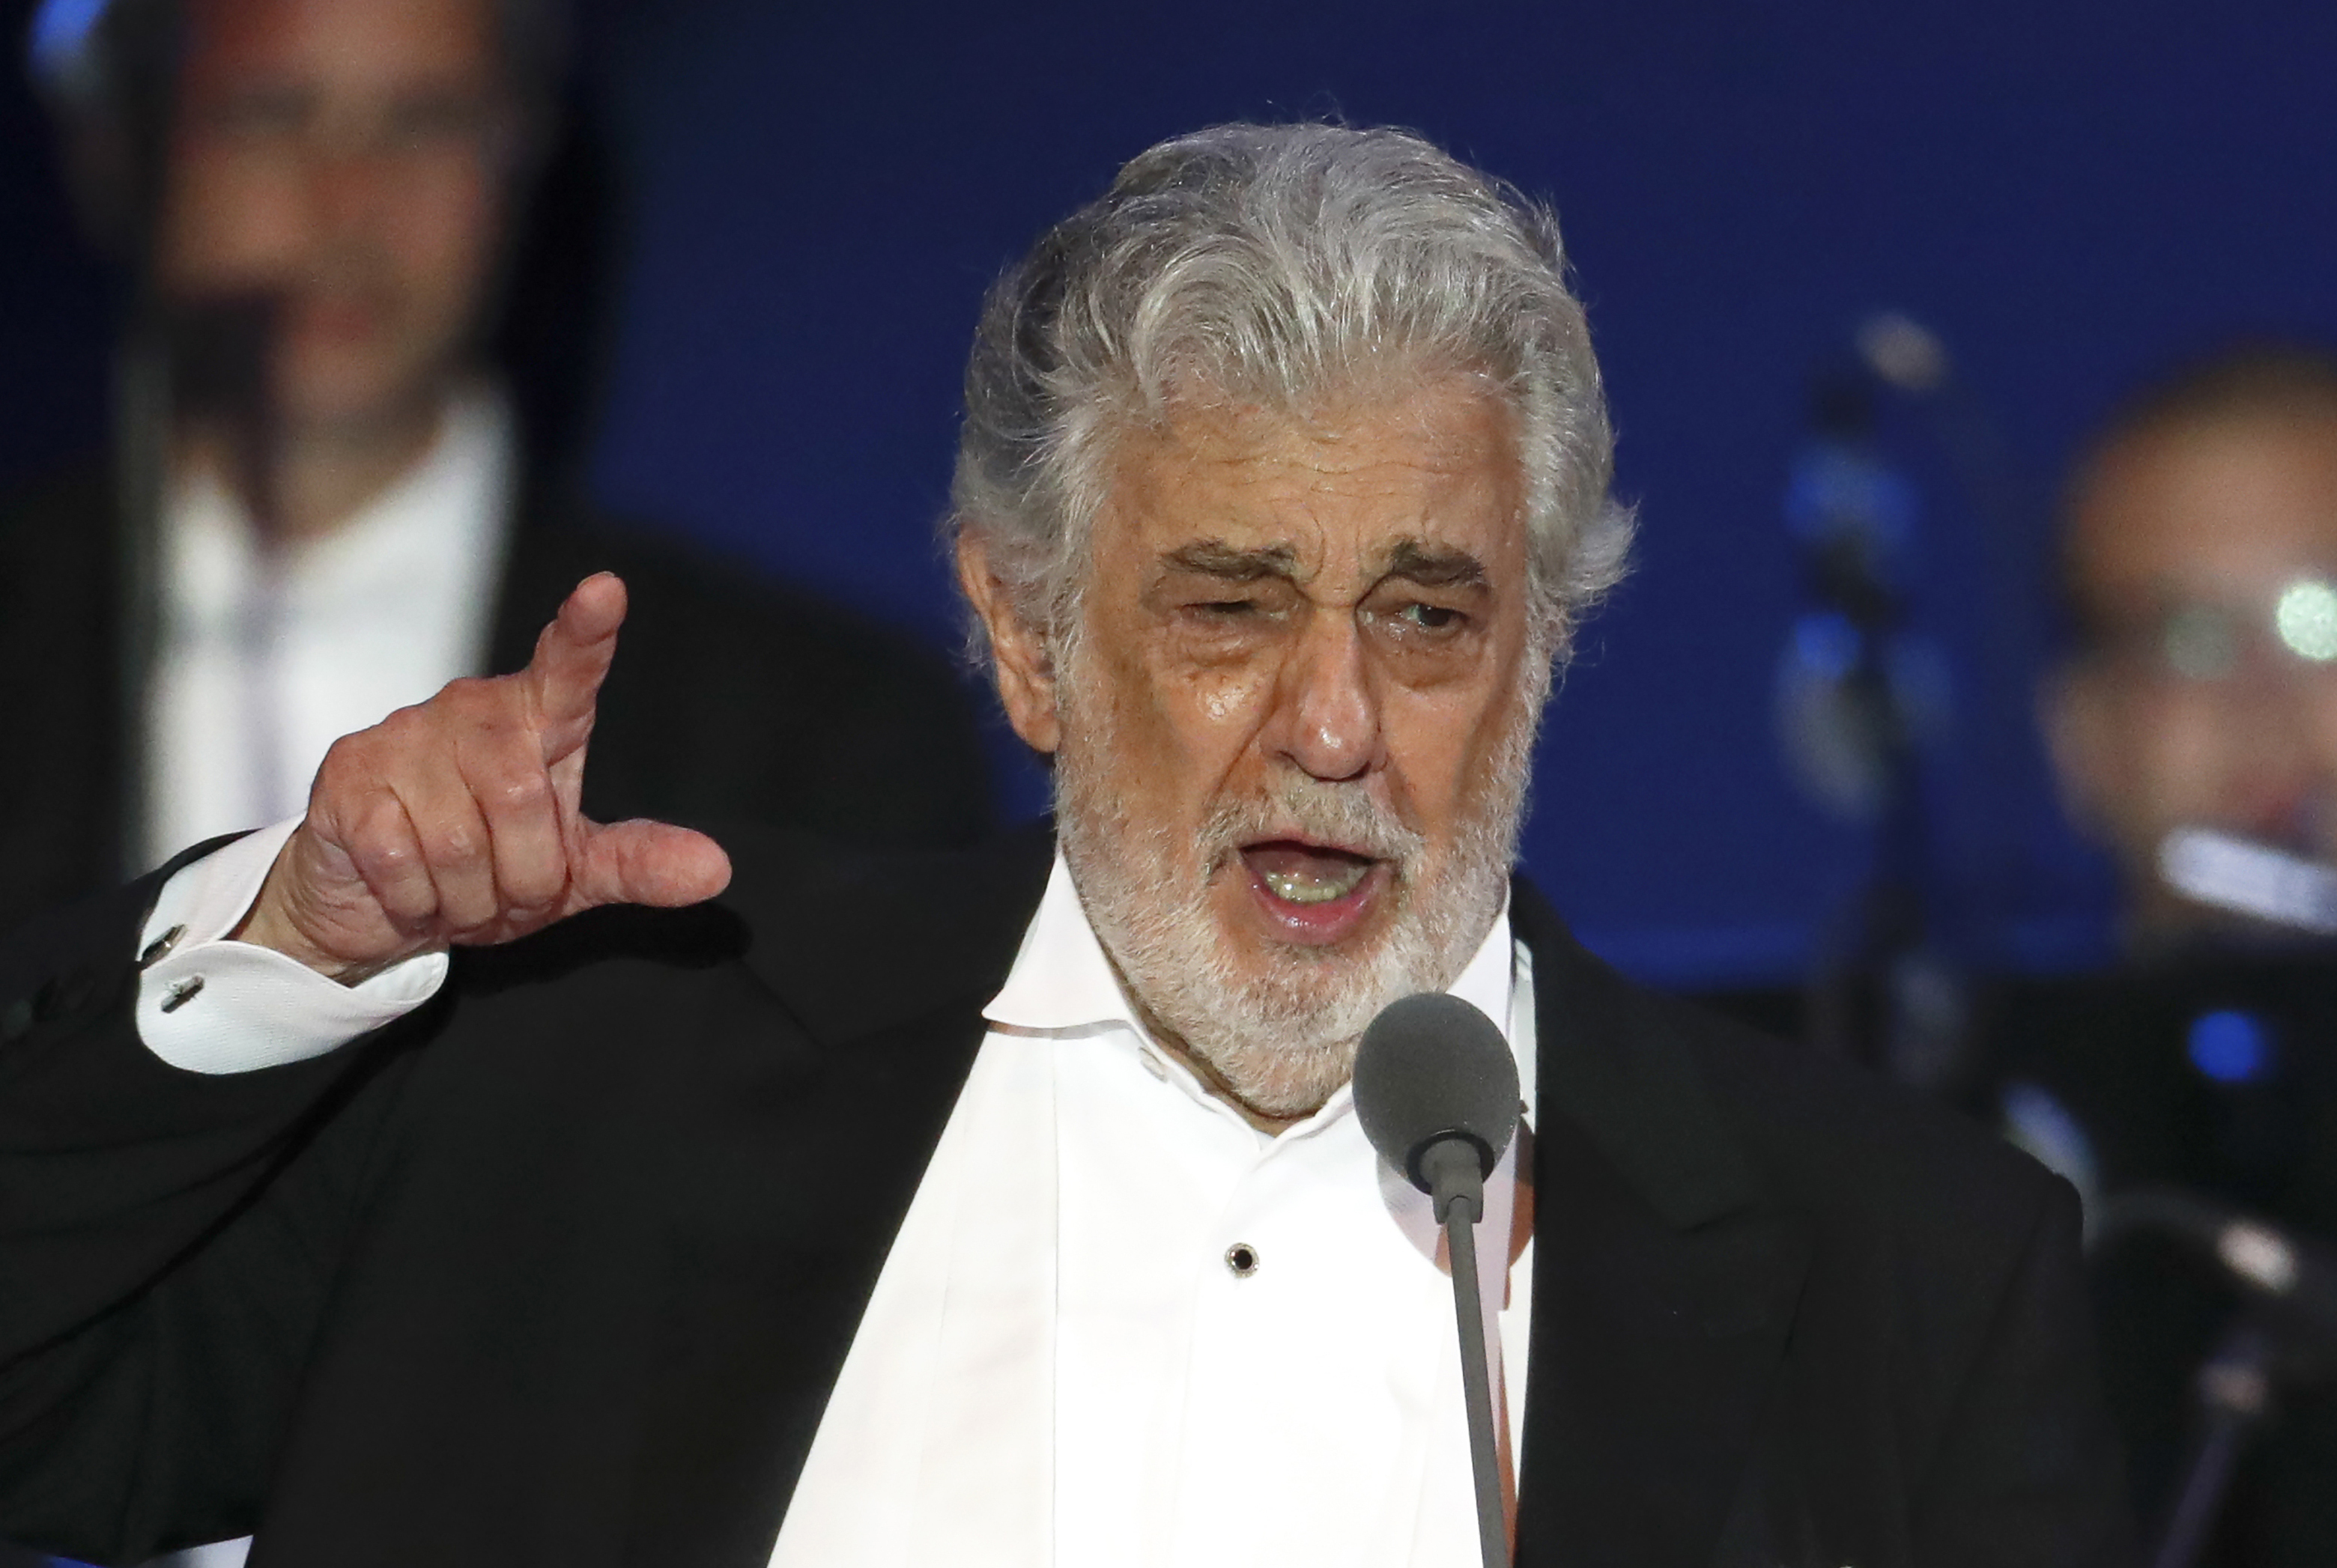 Opera singer Placido Domingo performs during a concert in Szeged, Hungary, in April.